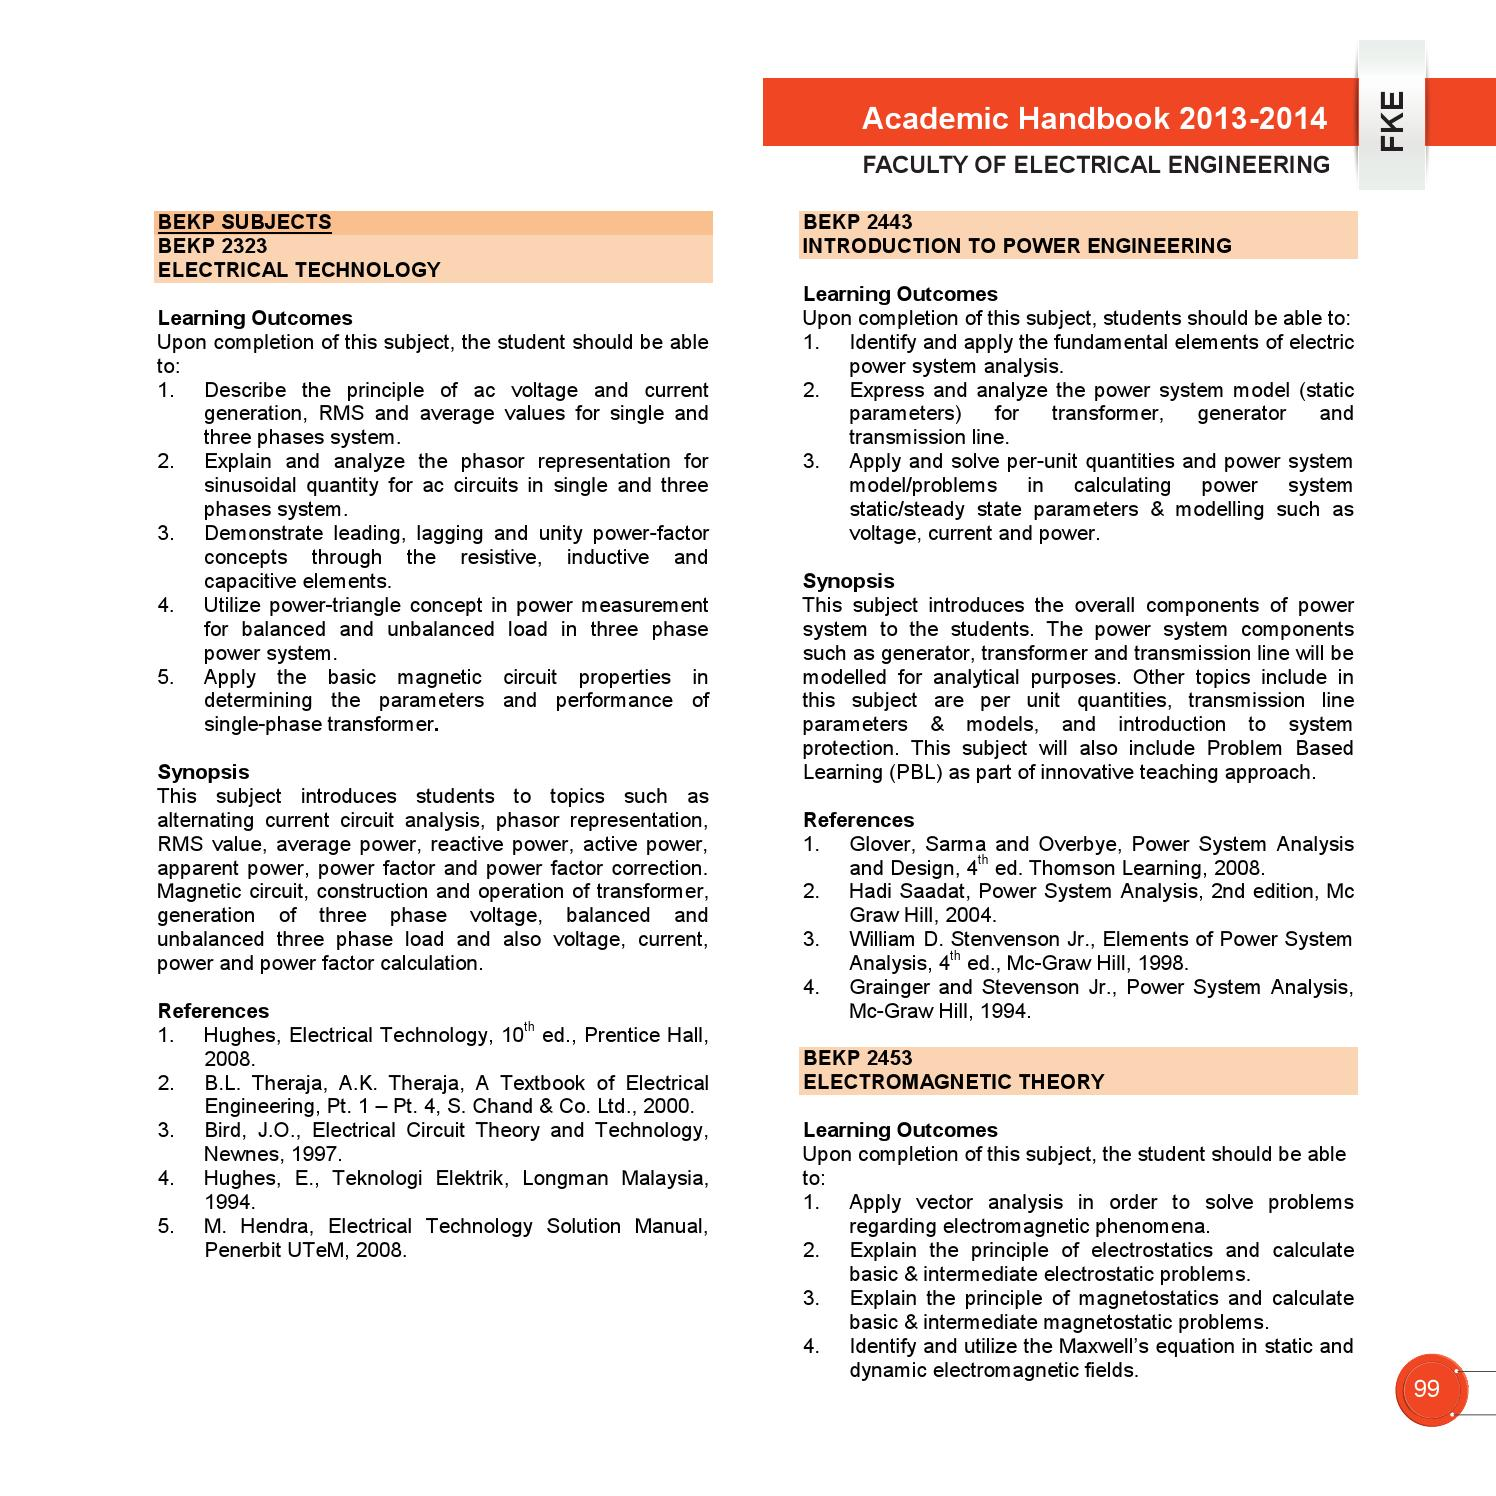 Academic handbook fke utem 20132014 by vincent loi issuu publicscrutiny Image collections